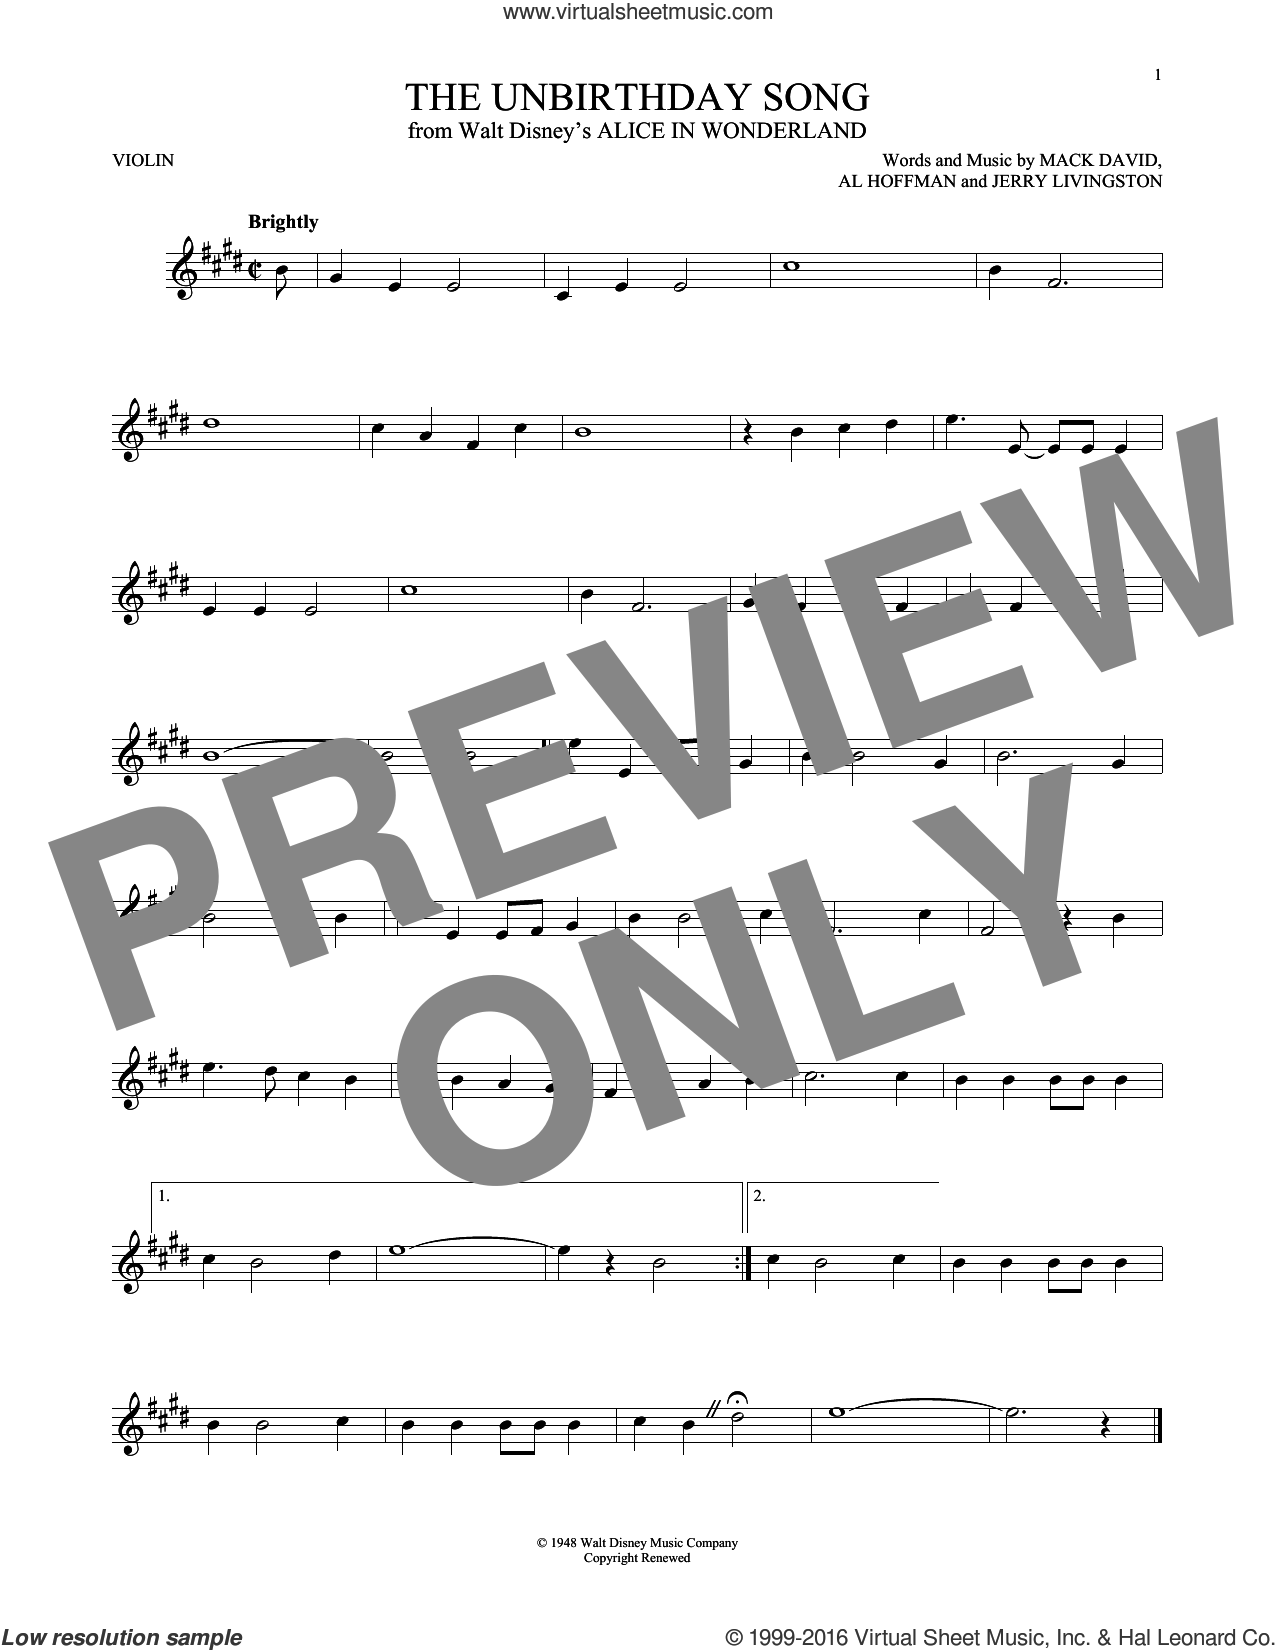 The Unbirthday Song sheet music for violin solo by Al Hoffman, Jerry Livingston, Mack David and Mack David, Al Hoffman and Jerry Livingston, intermediate